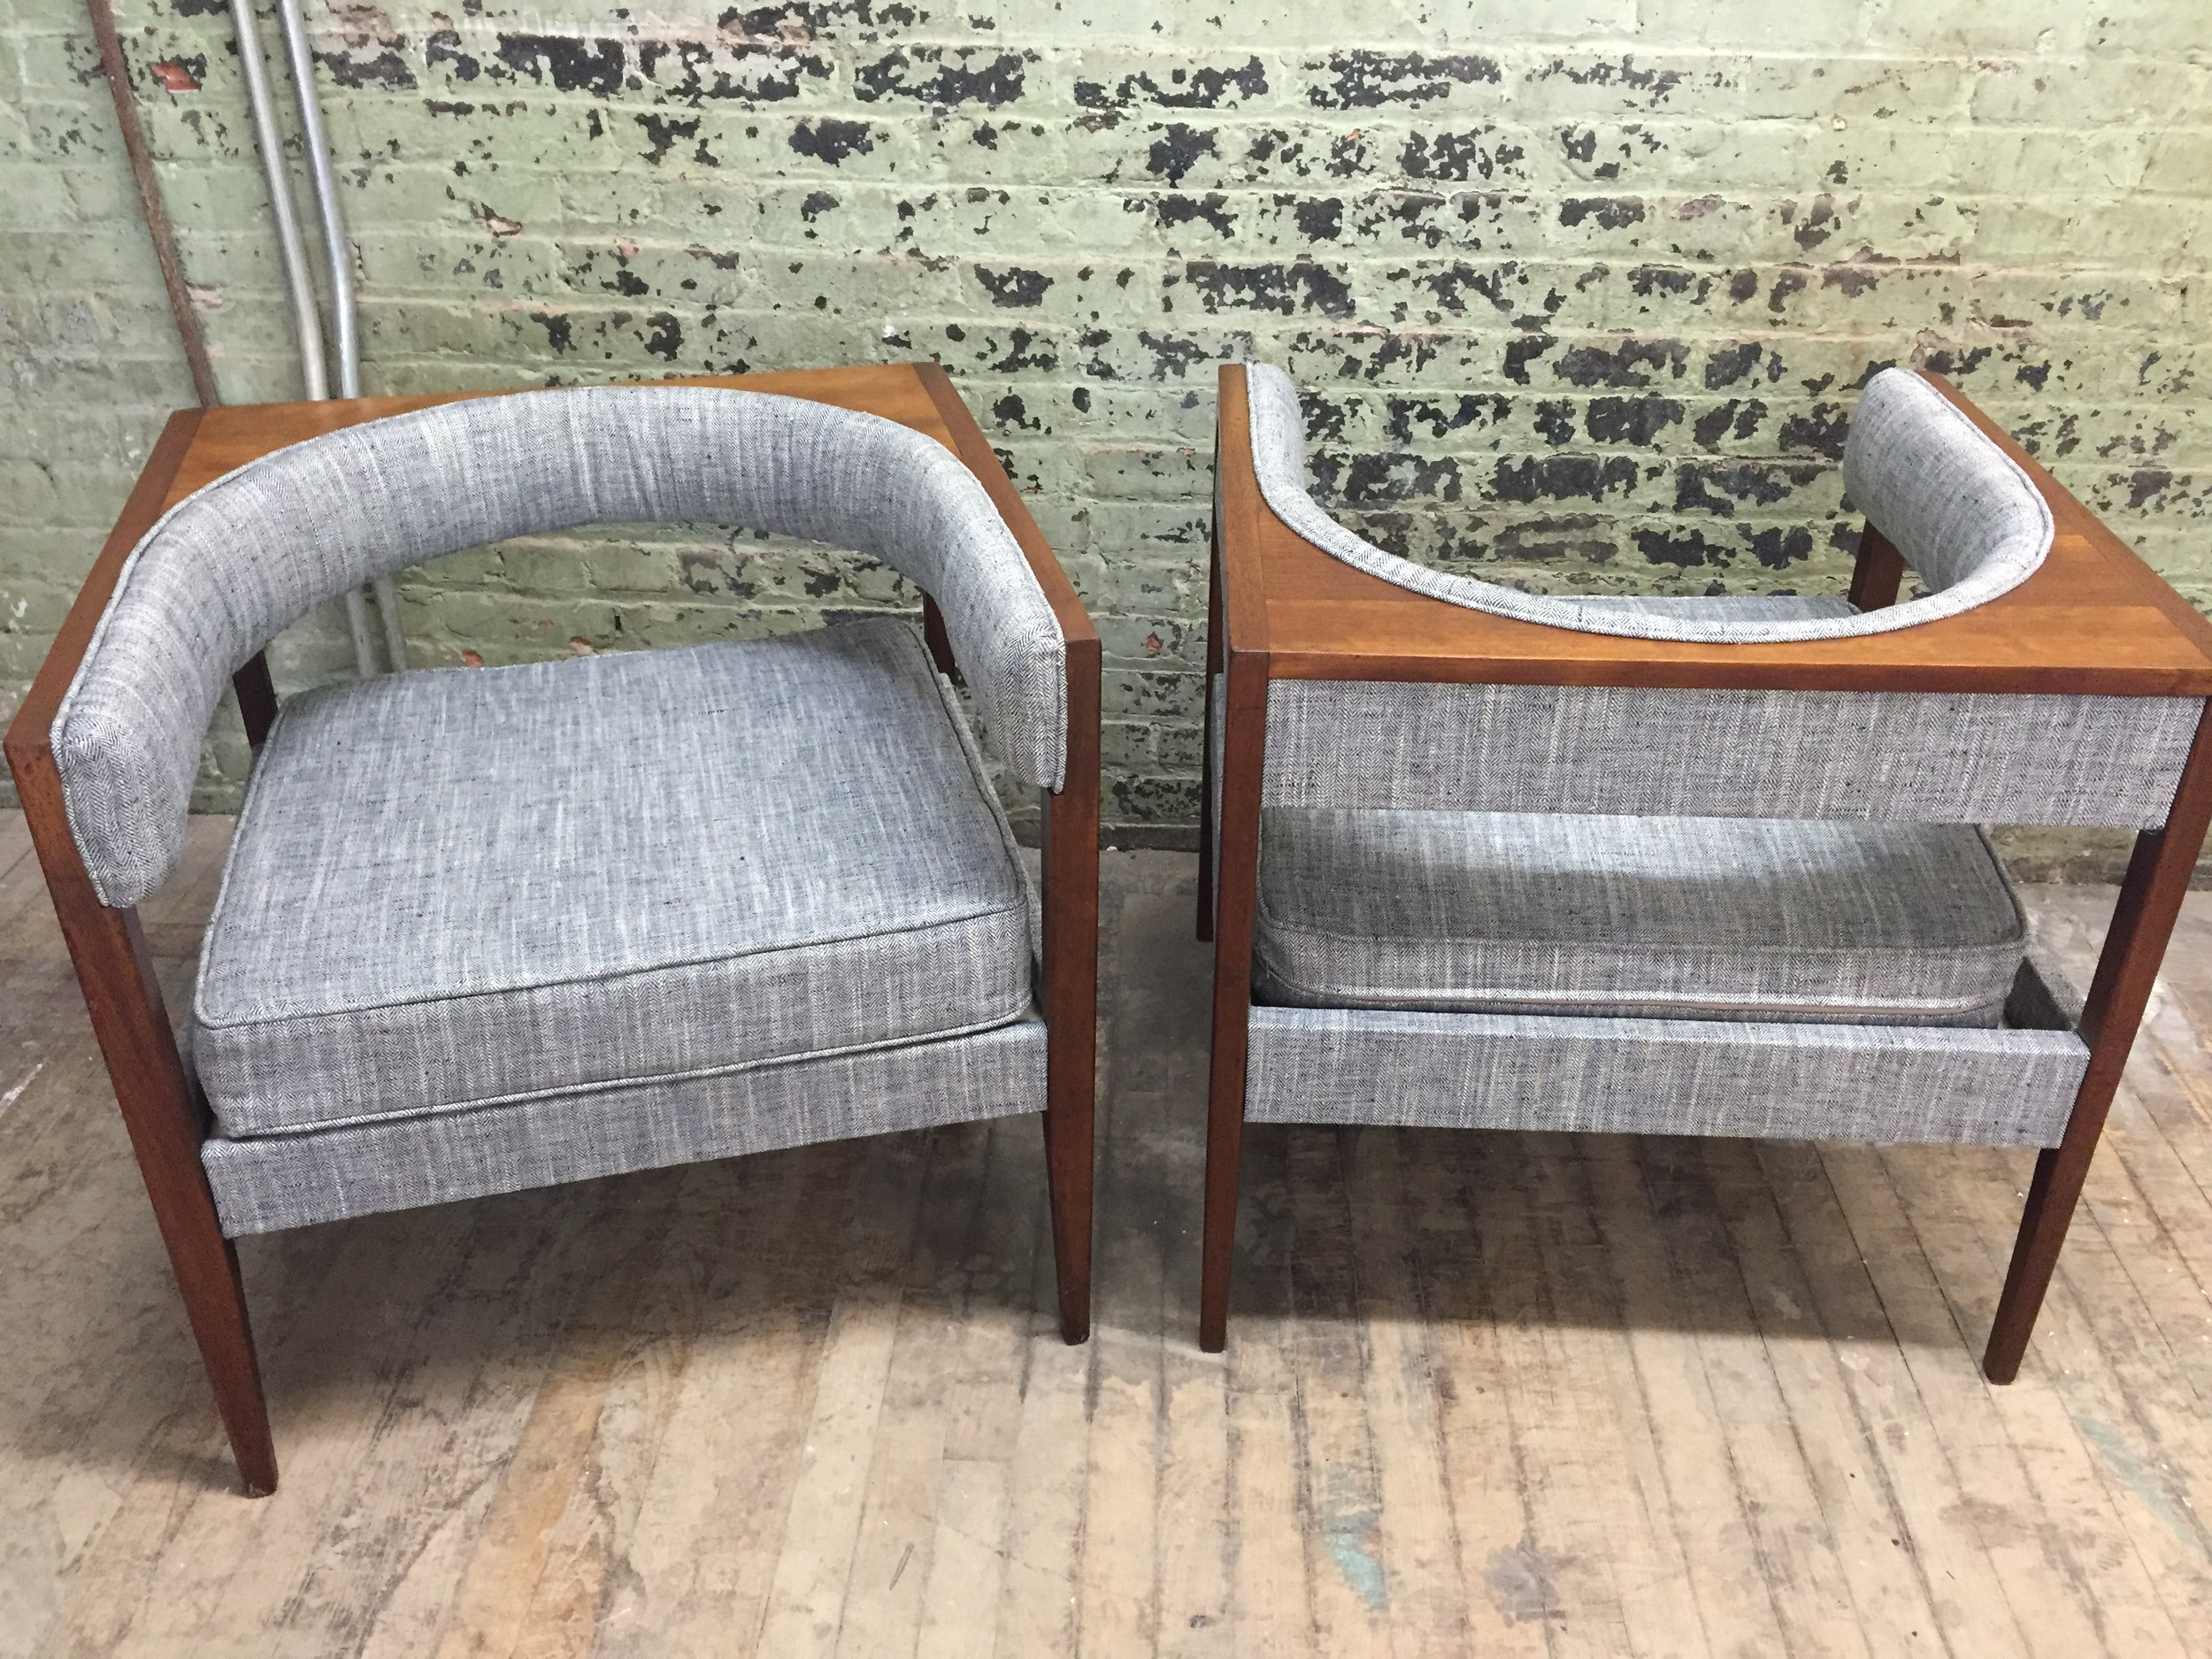 Danish Modern Chairs in West Elm fabric